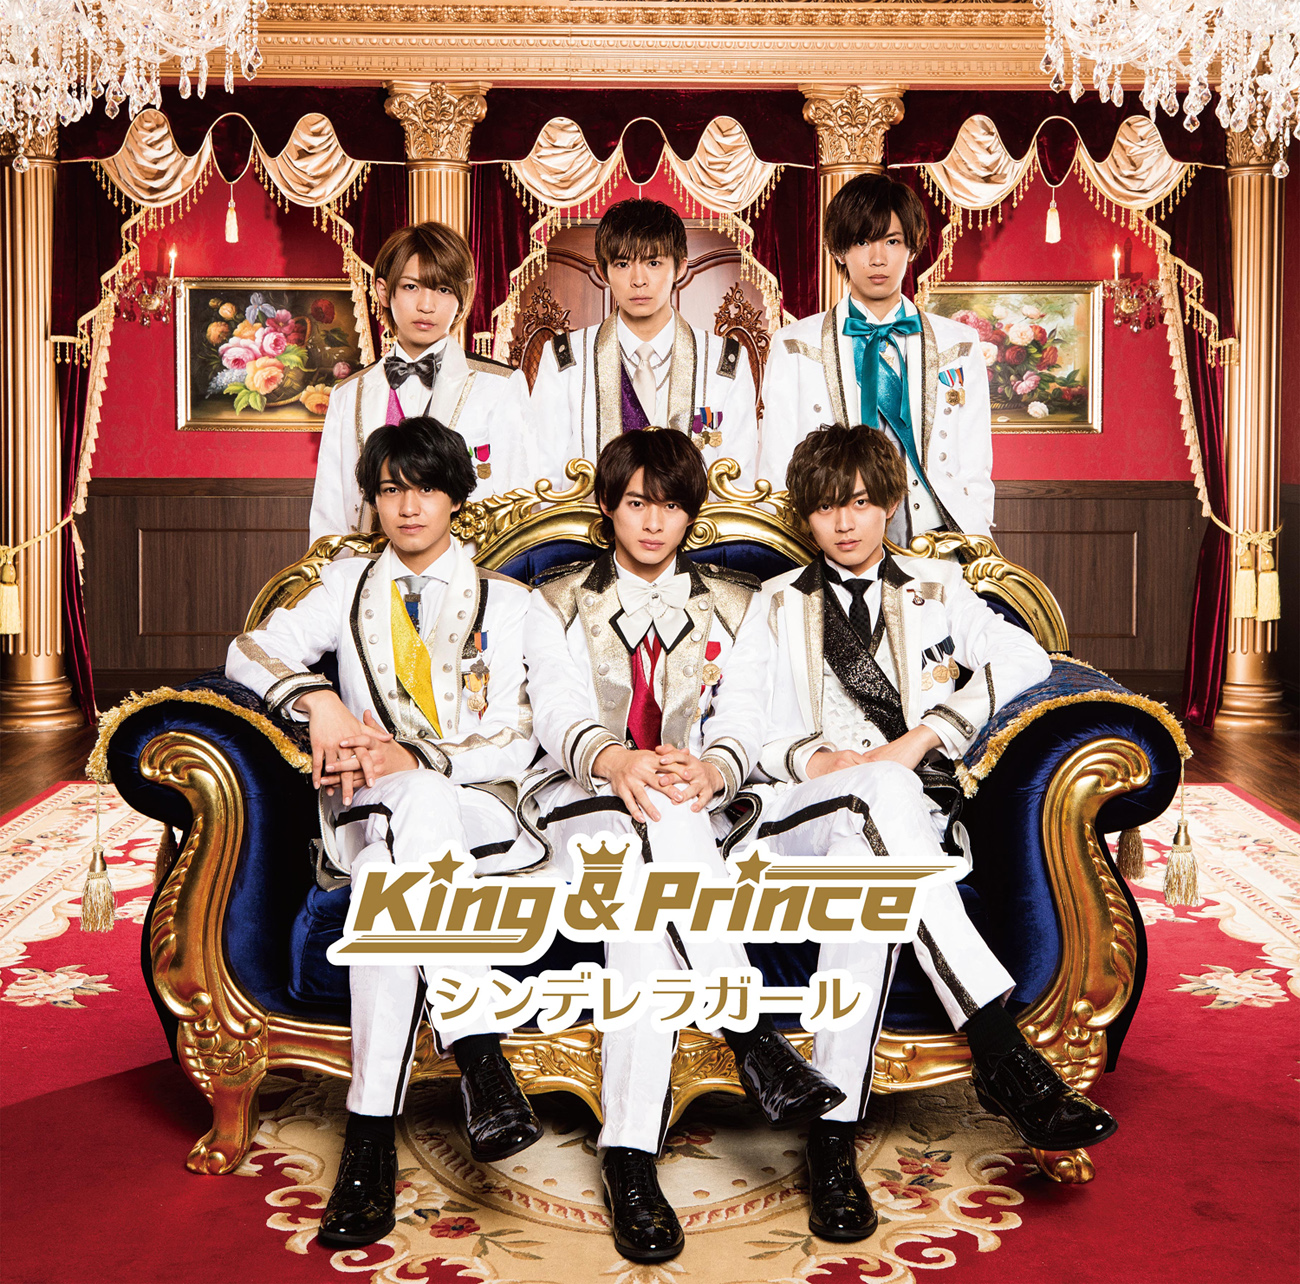 King & Prince-Cinderella Girl CD+DVD 初回盤